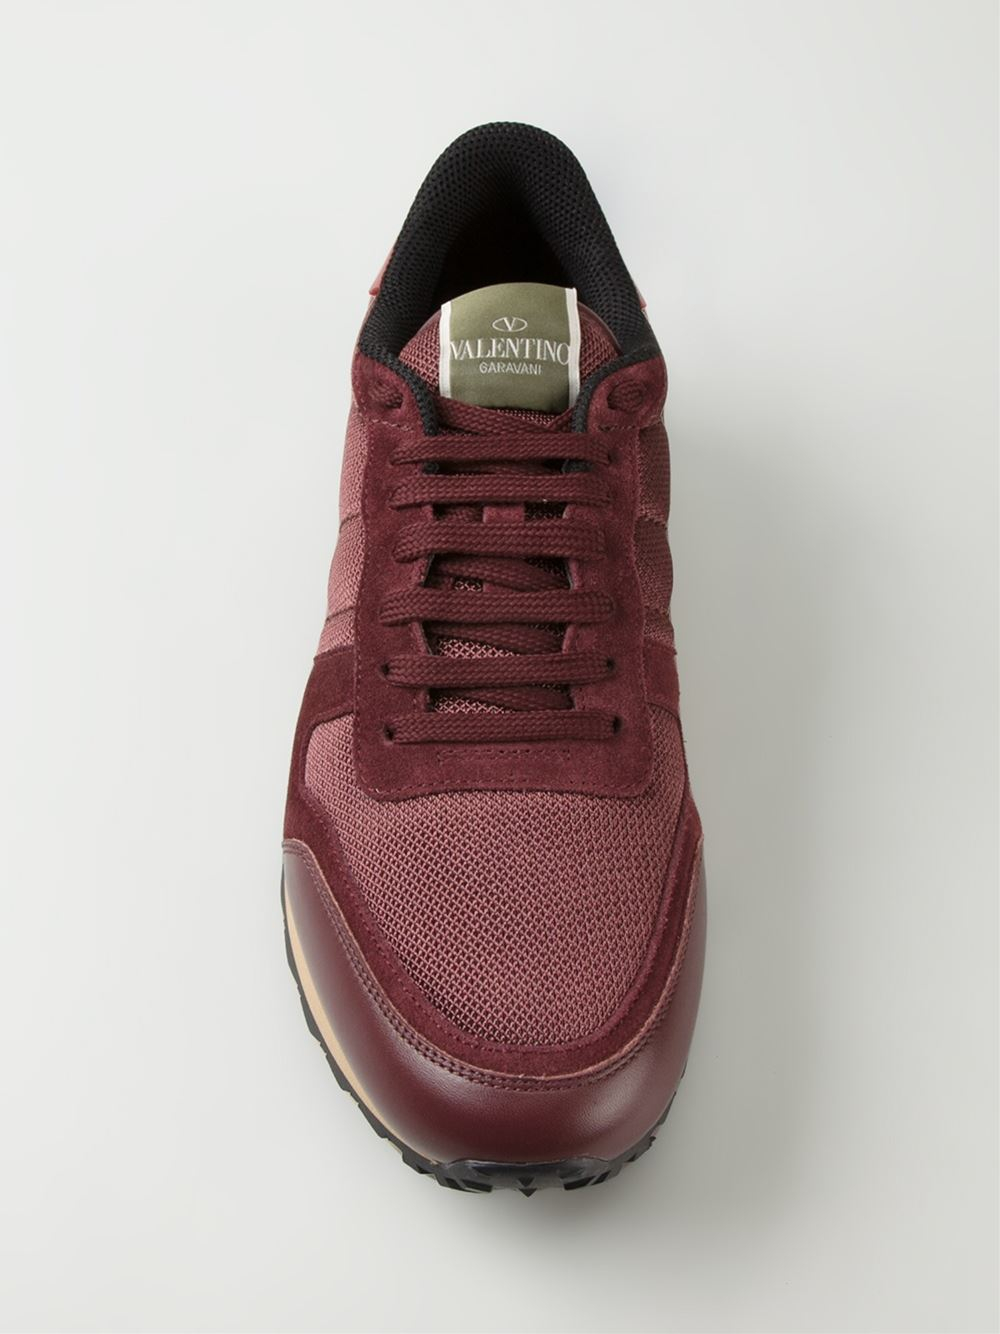 b1f6d7b51f345 Gallery. Previously sold at: Farfetch · Men's Valentino Rockrunner